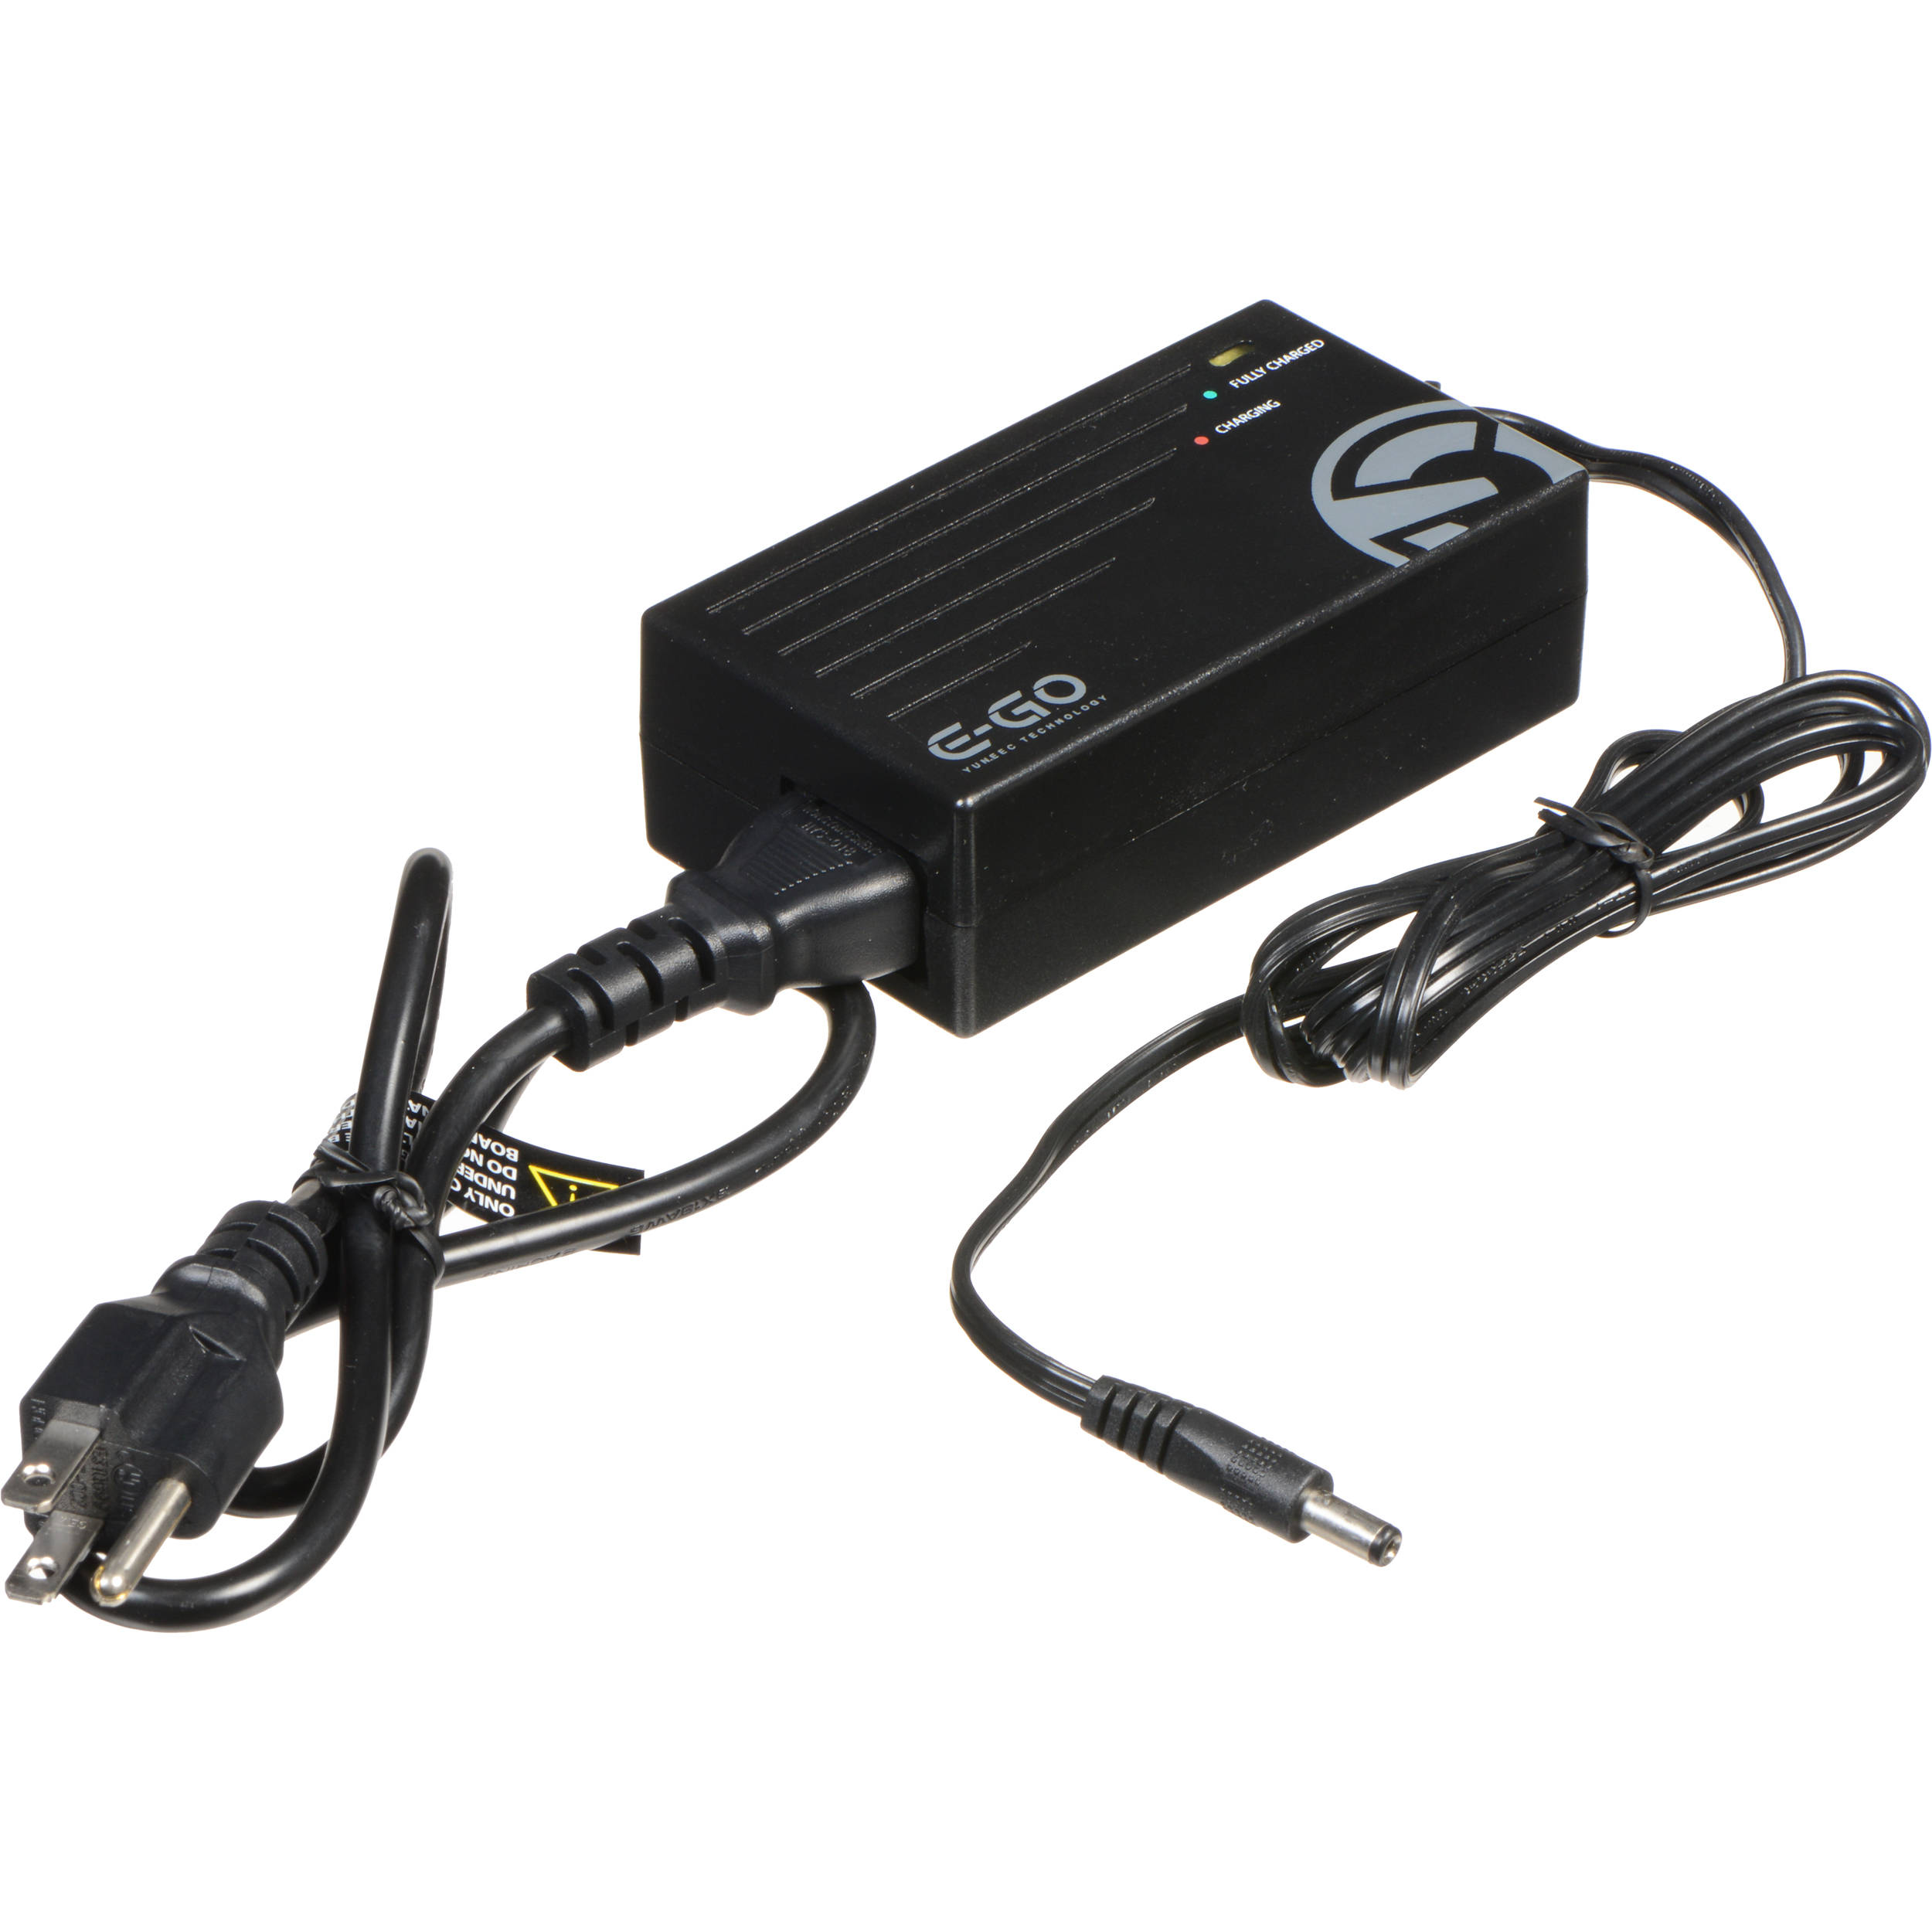 YUNEEC EGOCR010US Charger for EGo Cruiser Electric EGOCR010US